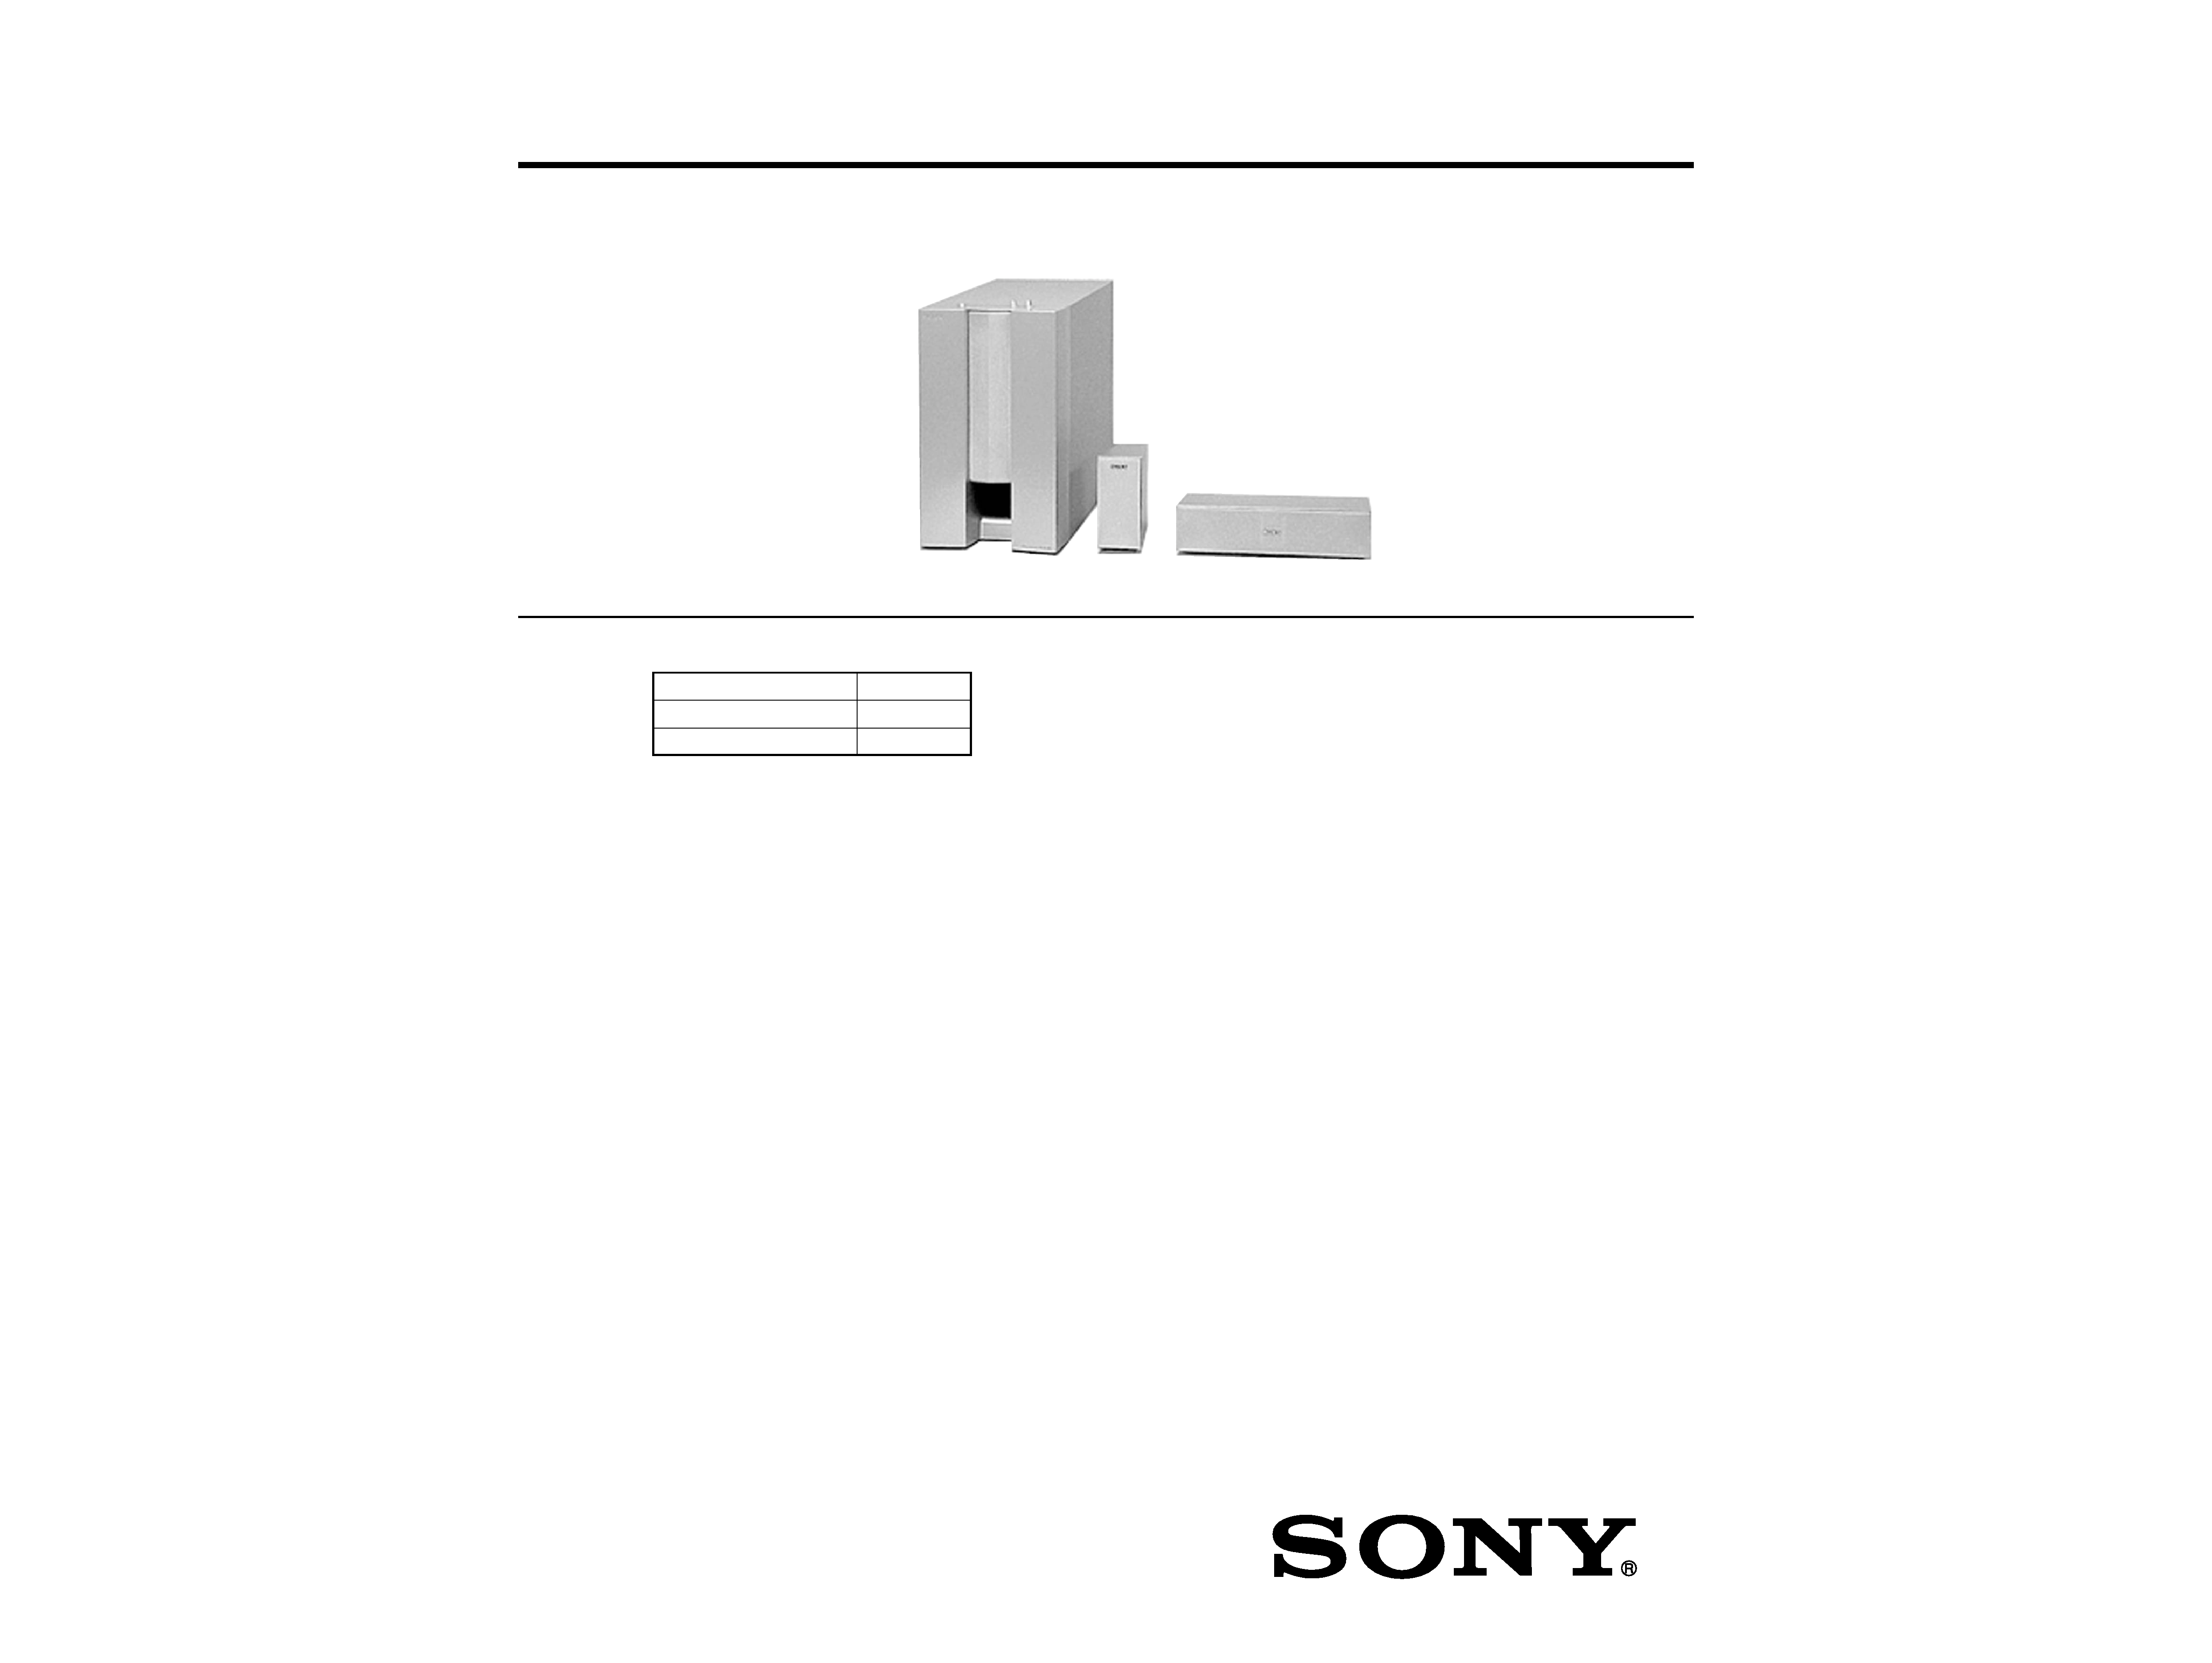 Sony Sa W30 Manual Powered Subwoofer System Auto Electrical Wiring Store Gtgt 944 2 Climate Control Ac Compressor Diagram Ssv335